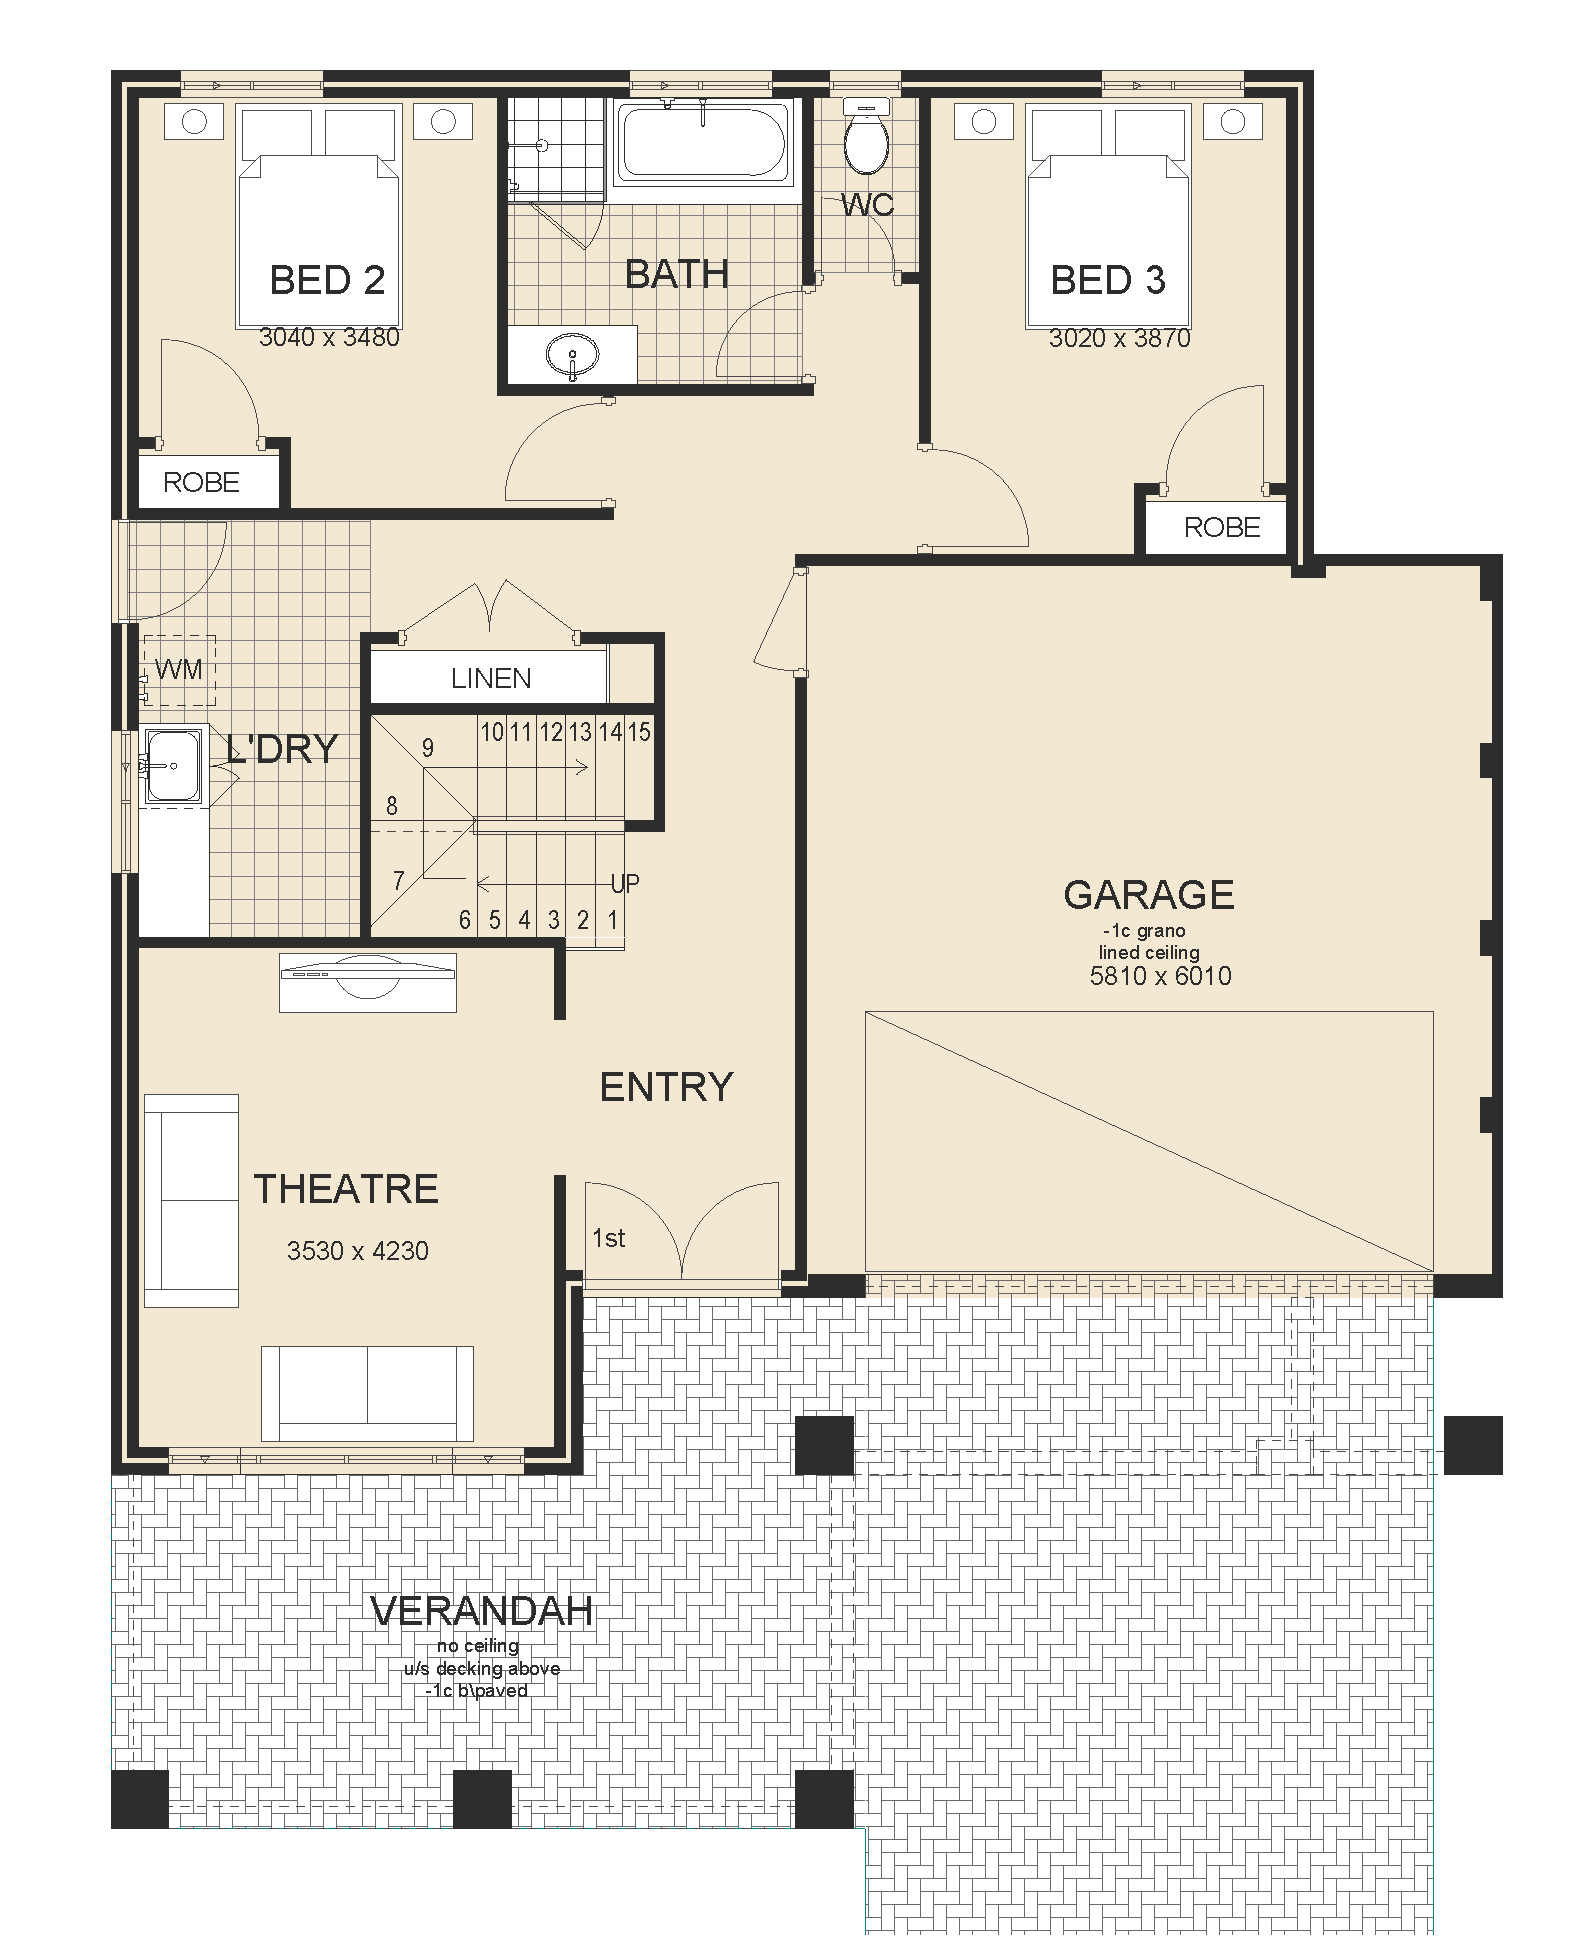 House design upstairs living - San Remo Series 1 Upstairs Living House Plan Sample